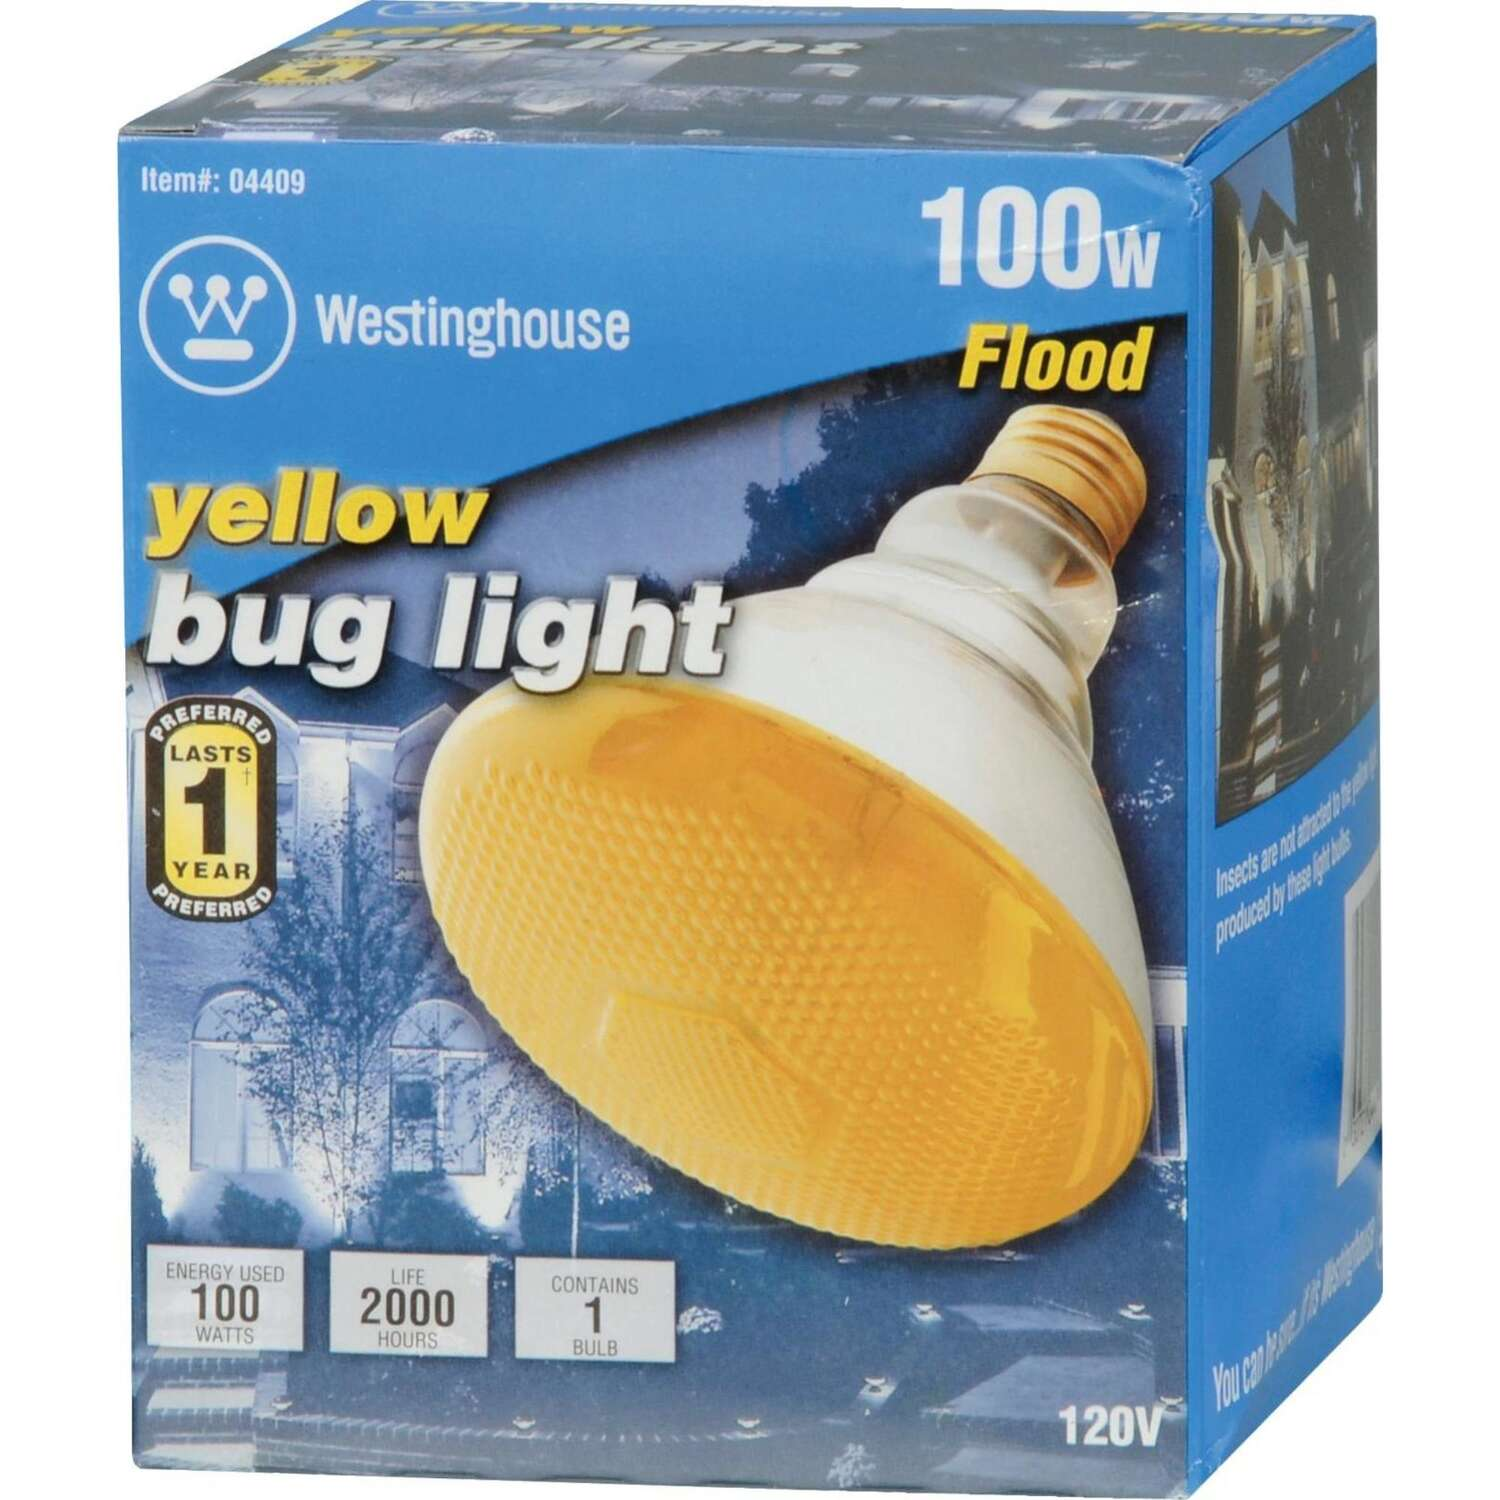 Westinghouse  Bug Light  100 watts E26  Incandescent Bulb  Yellow  1 pk Floodlight